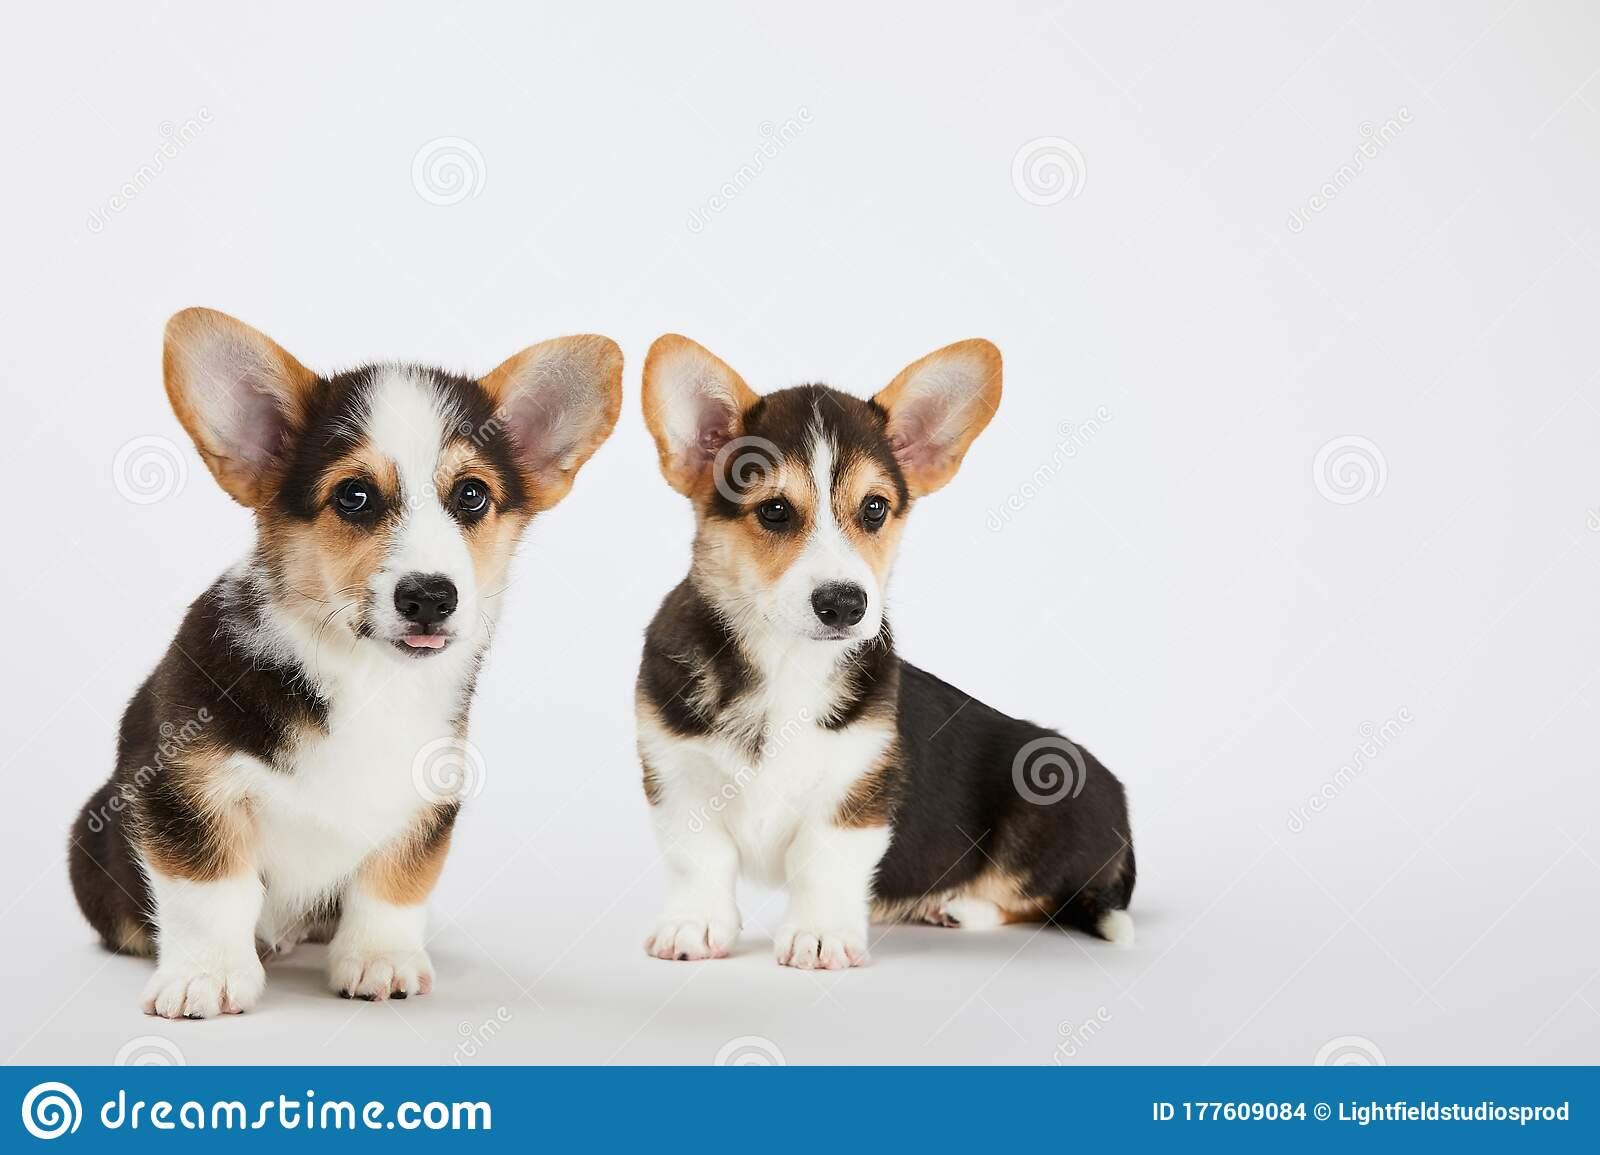 Cute Fluffy Corgi Puppies On White Stock Photo Image Of Backdrop Puppies 177609084